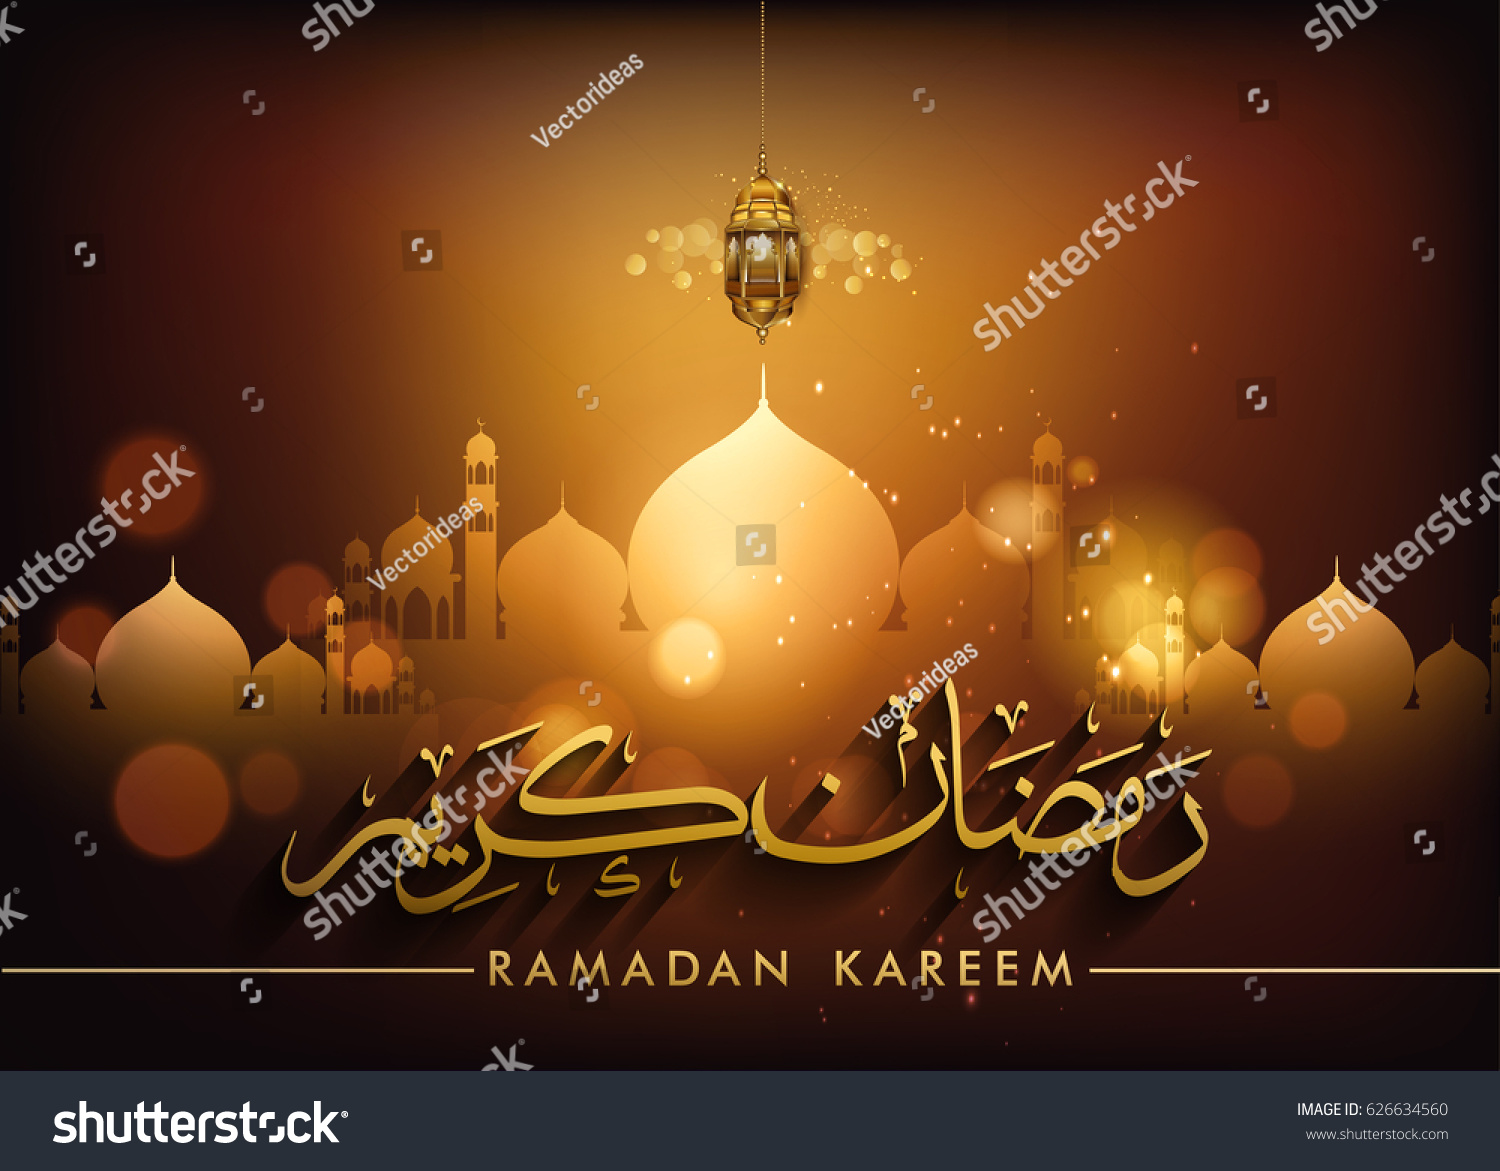 Ramadan greetings background arabic calligraphy elegant stock vector ramadan greetings background with arabic calligraphy elegant element for design template place for text kristyandbryce Images